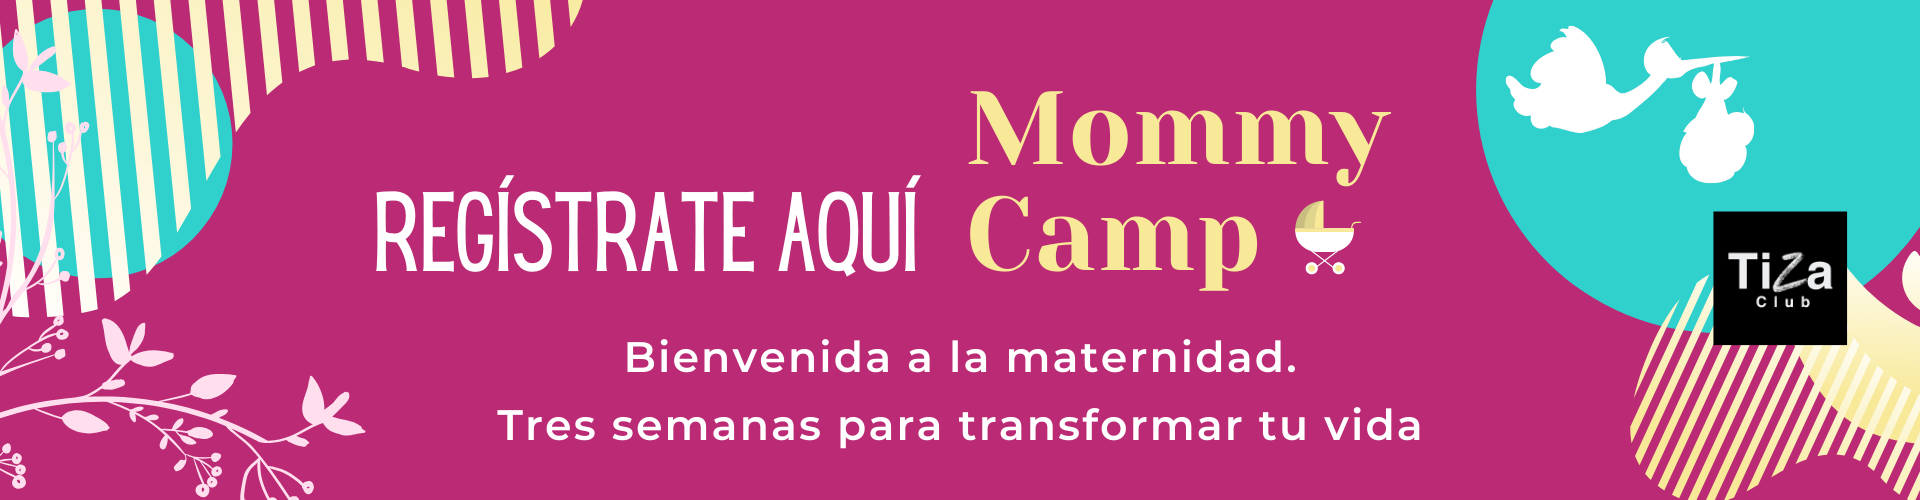 Banner Mommy Camp